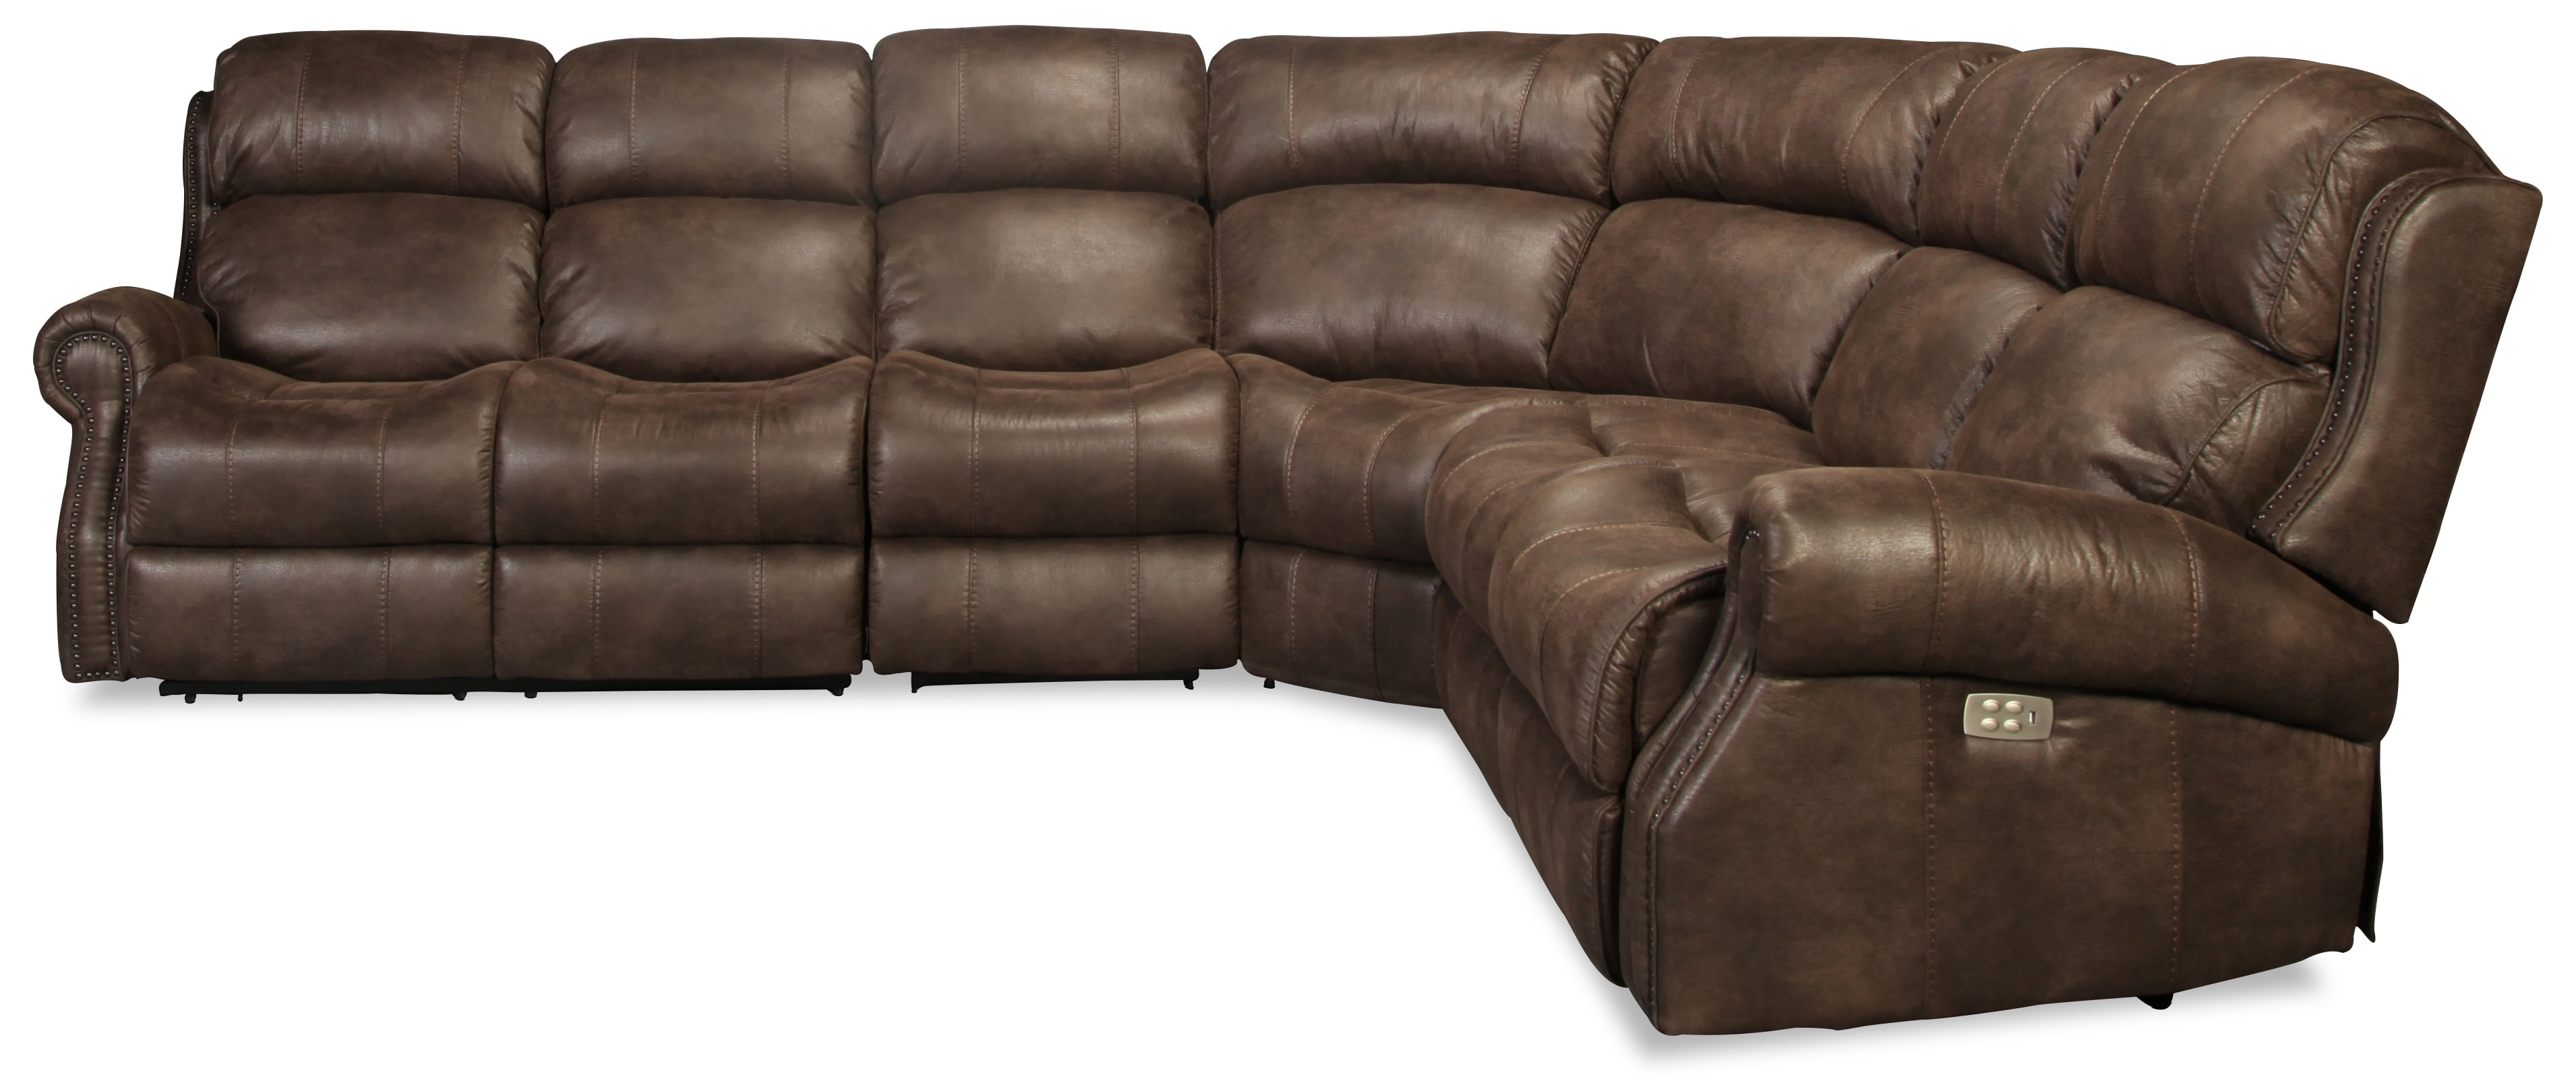 Rylee 4pc Power Reclining Sectional